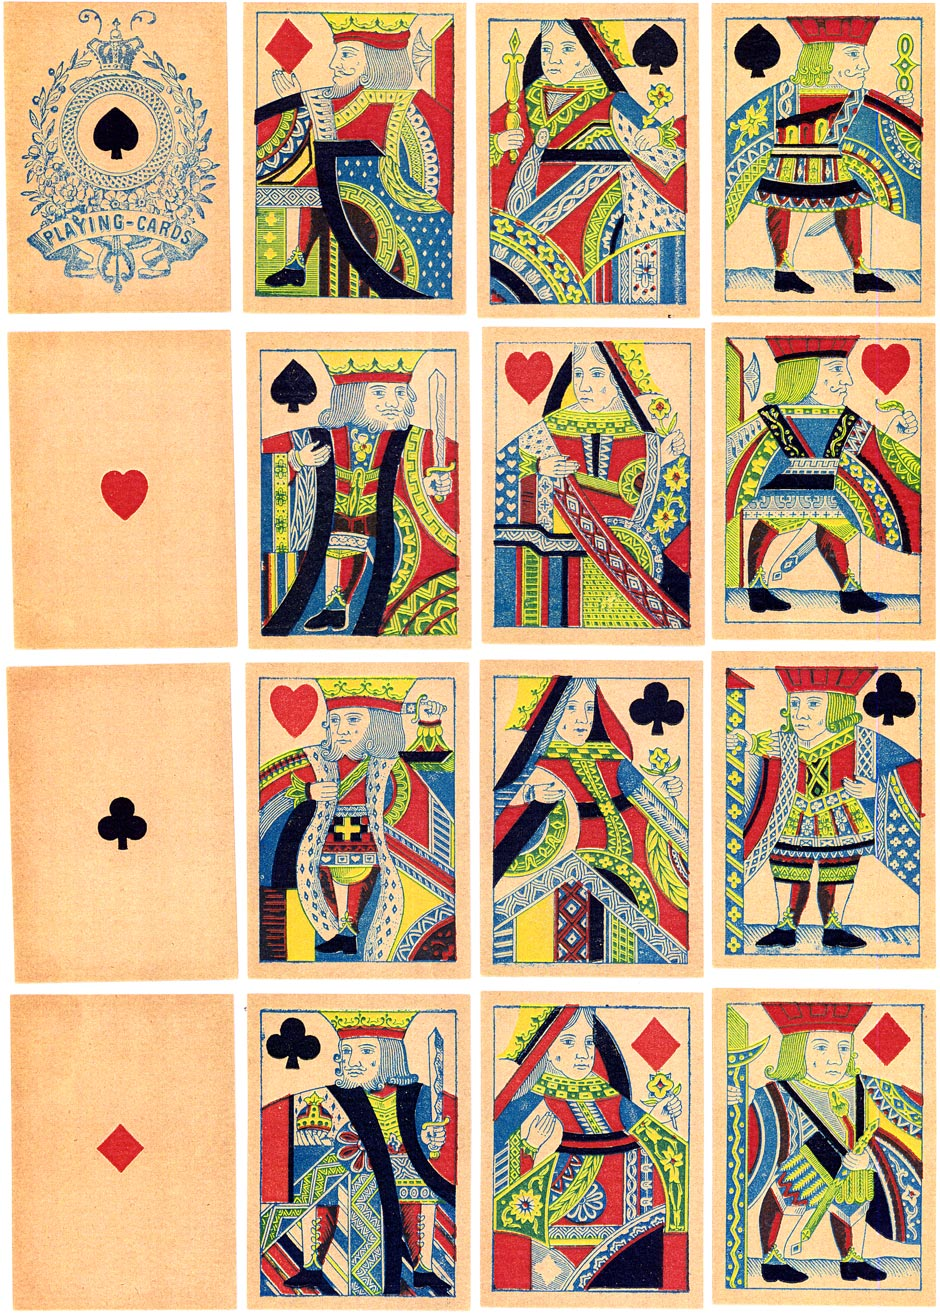 English type 'Mogul' playing cards manufactured in Switzerland by John Müller for export to India, c.1880-1890